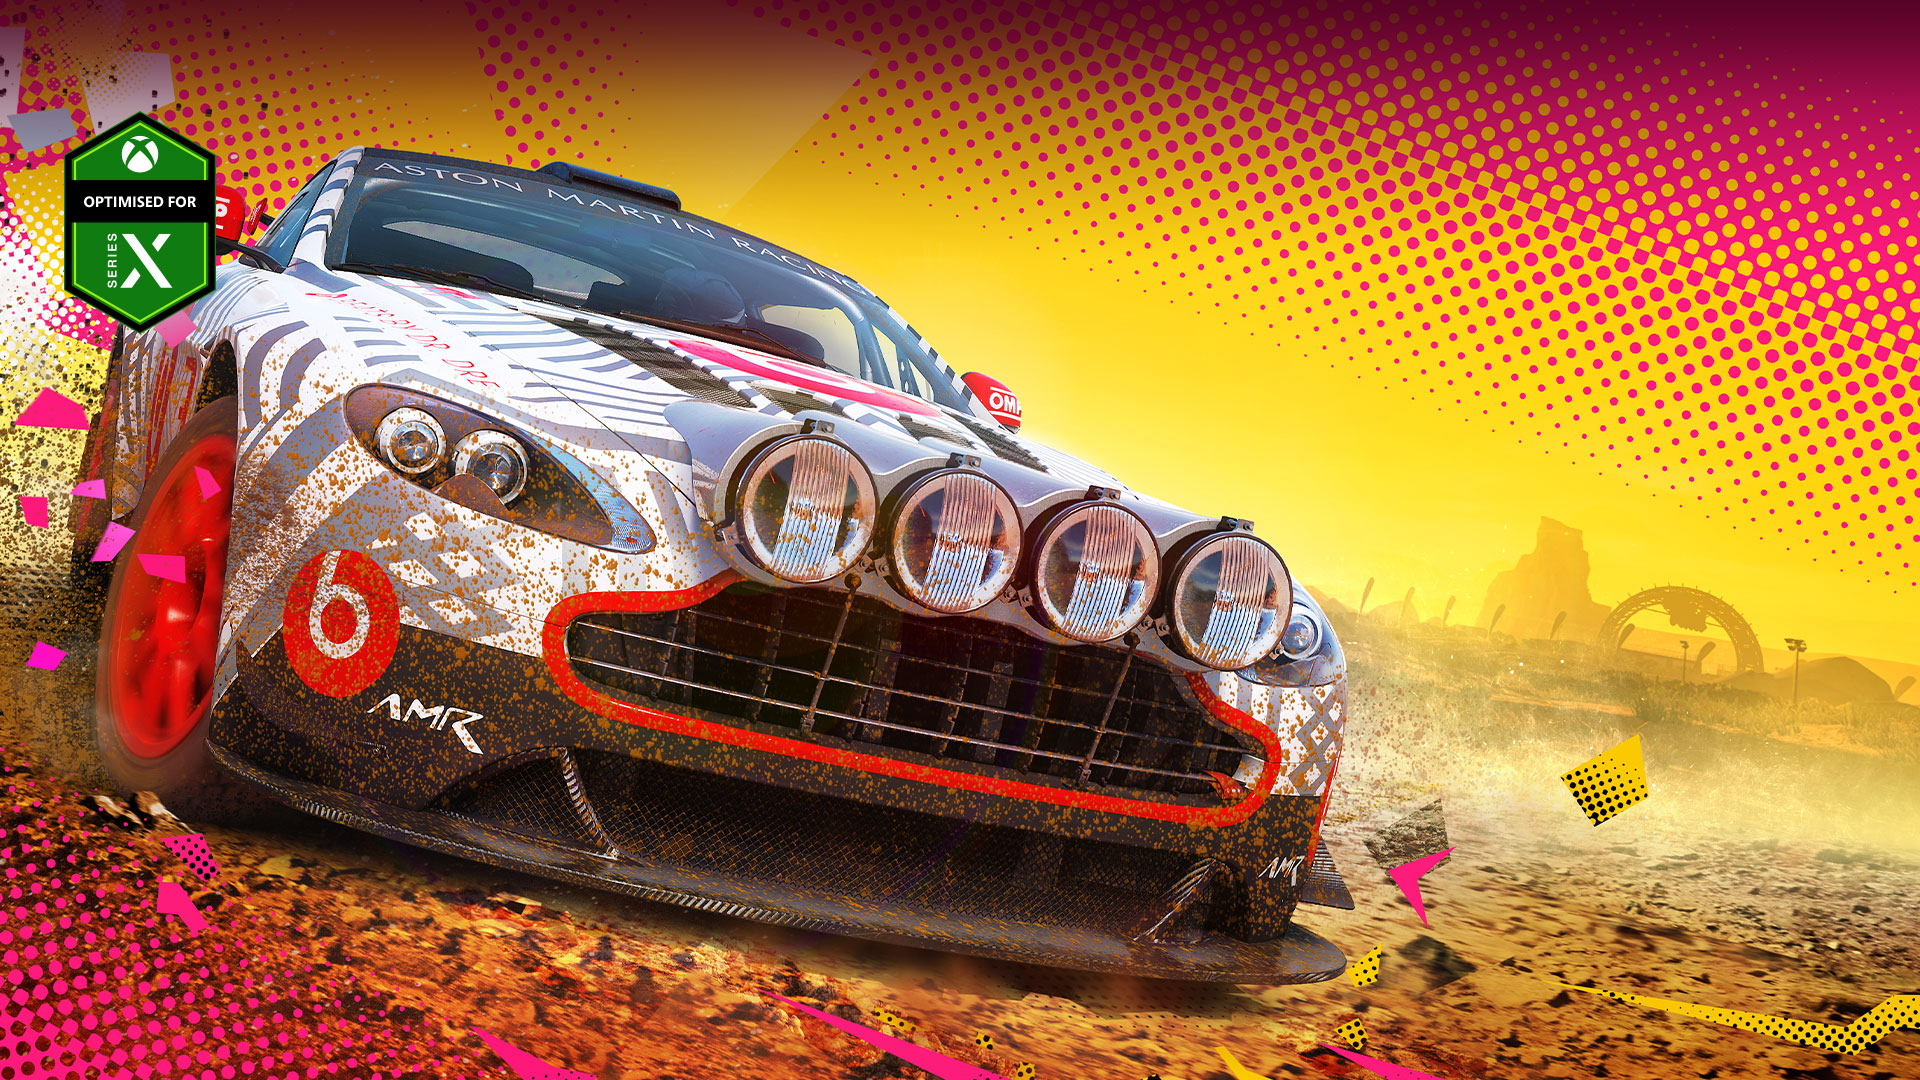 Optimised for Series X logo, Car in mud with yellow and pink background